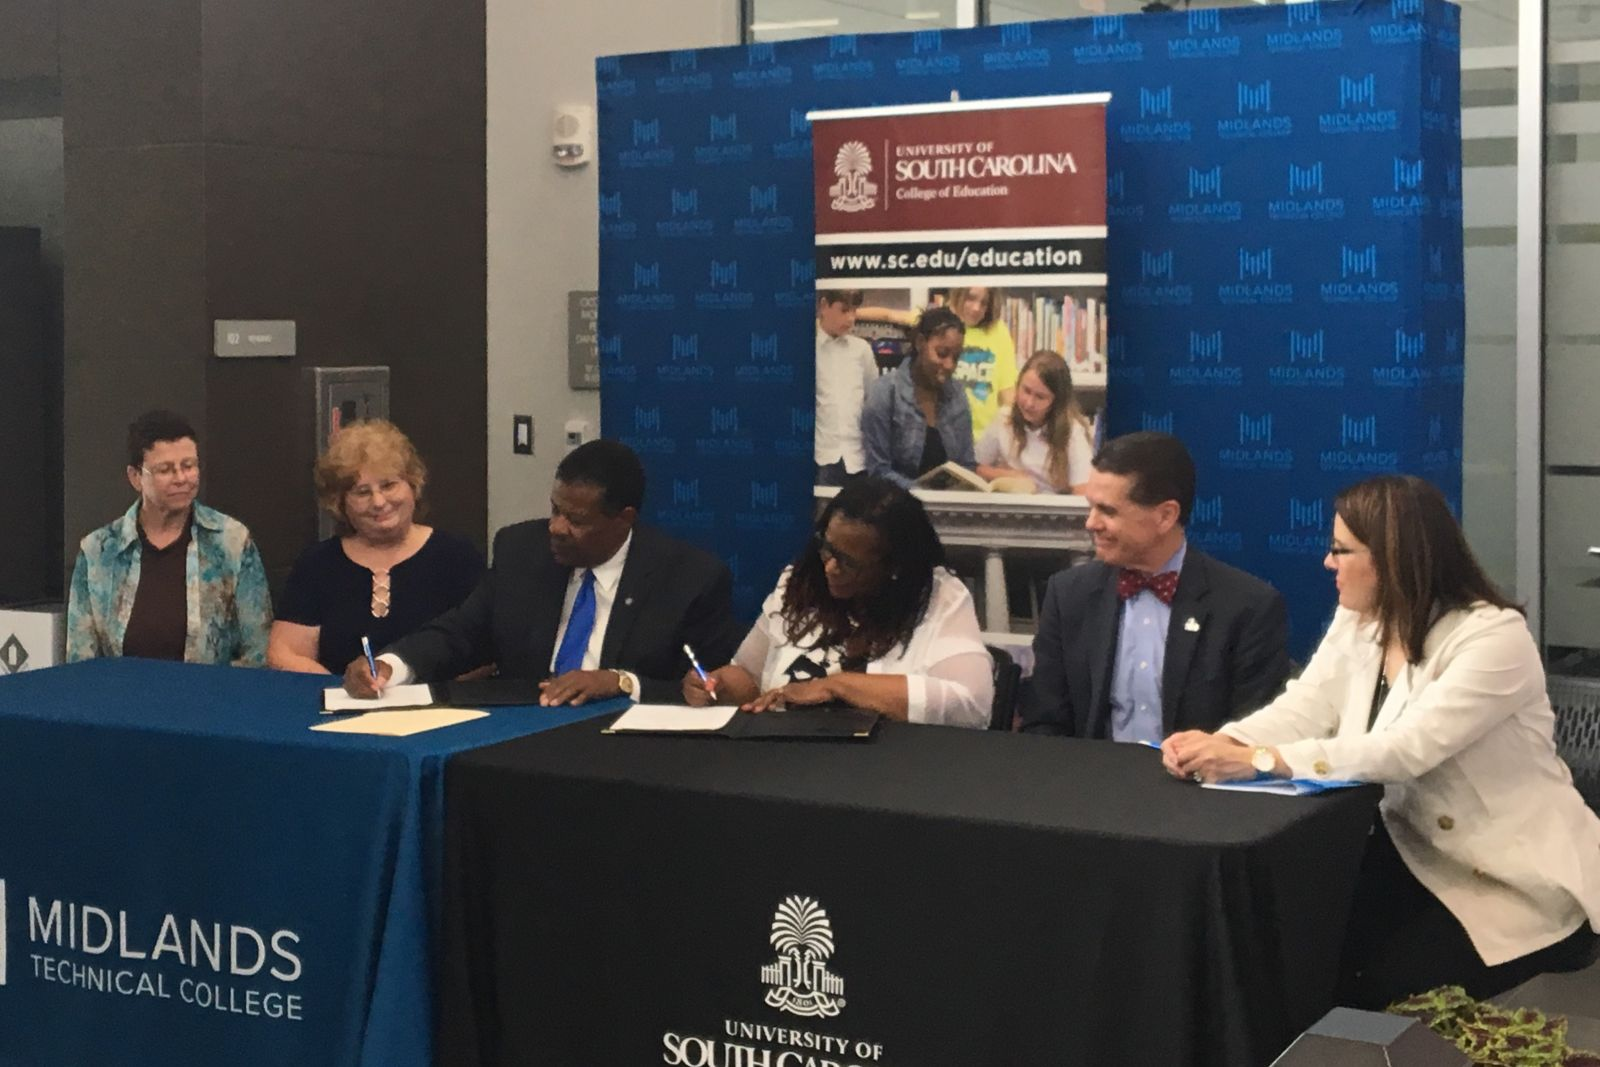 Officials from the University of South Carolina and Midlands Technical College, including MTC president Ron Rhames (third from left), sign an agreement to streamline the transfer process for MTC graduates looking to pursue an education degree at USC. (Photo/Melinda Waldrop)